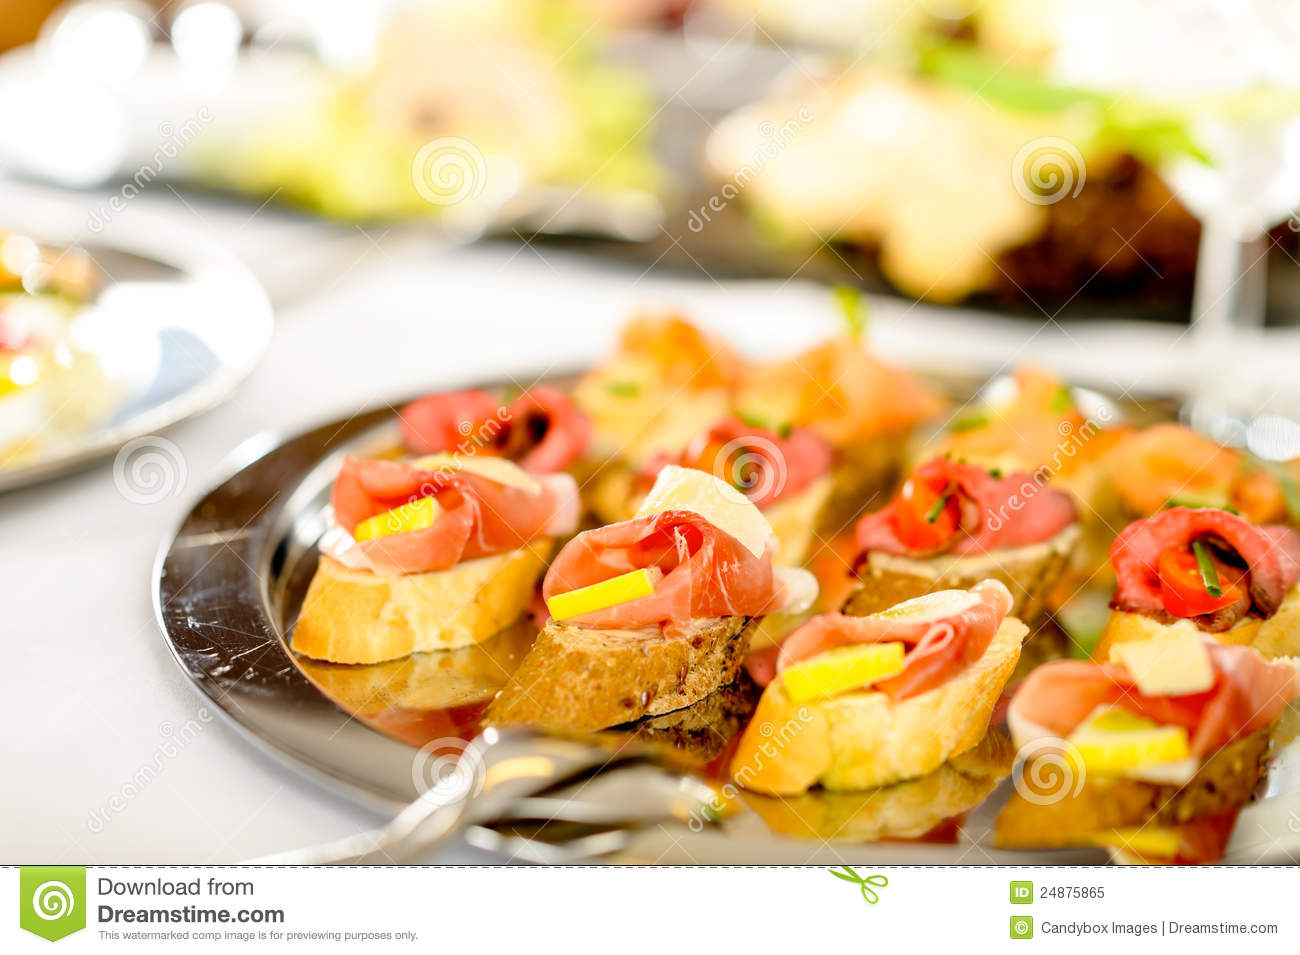 Catering canapes tray food details appetizers royalty free for Catering canape